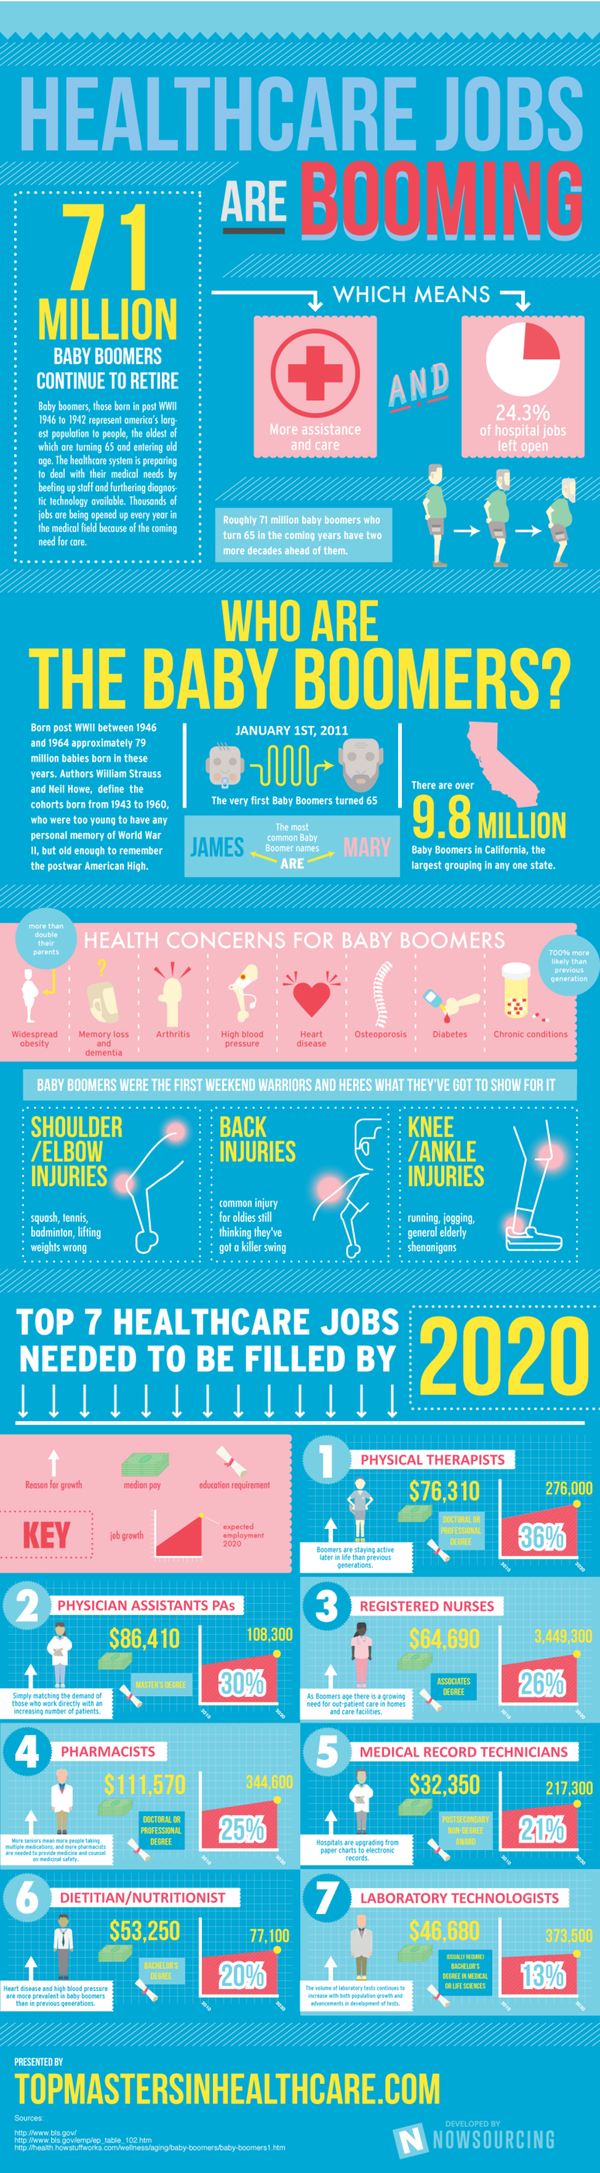 Healthcare-jobs-are-booming_50a508fc2157a